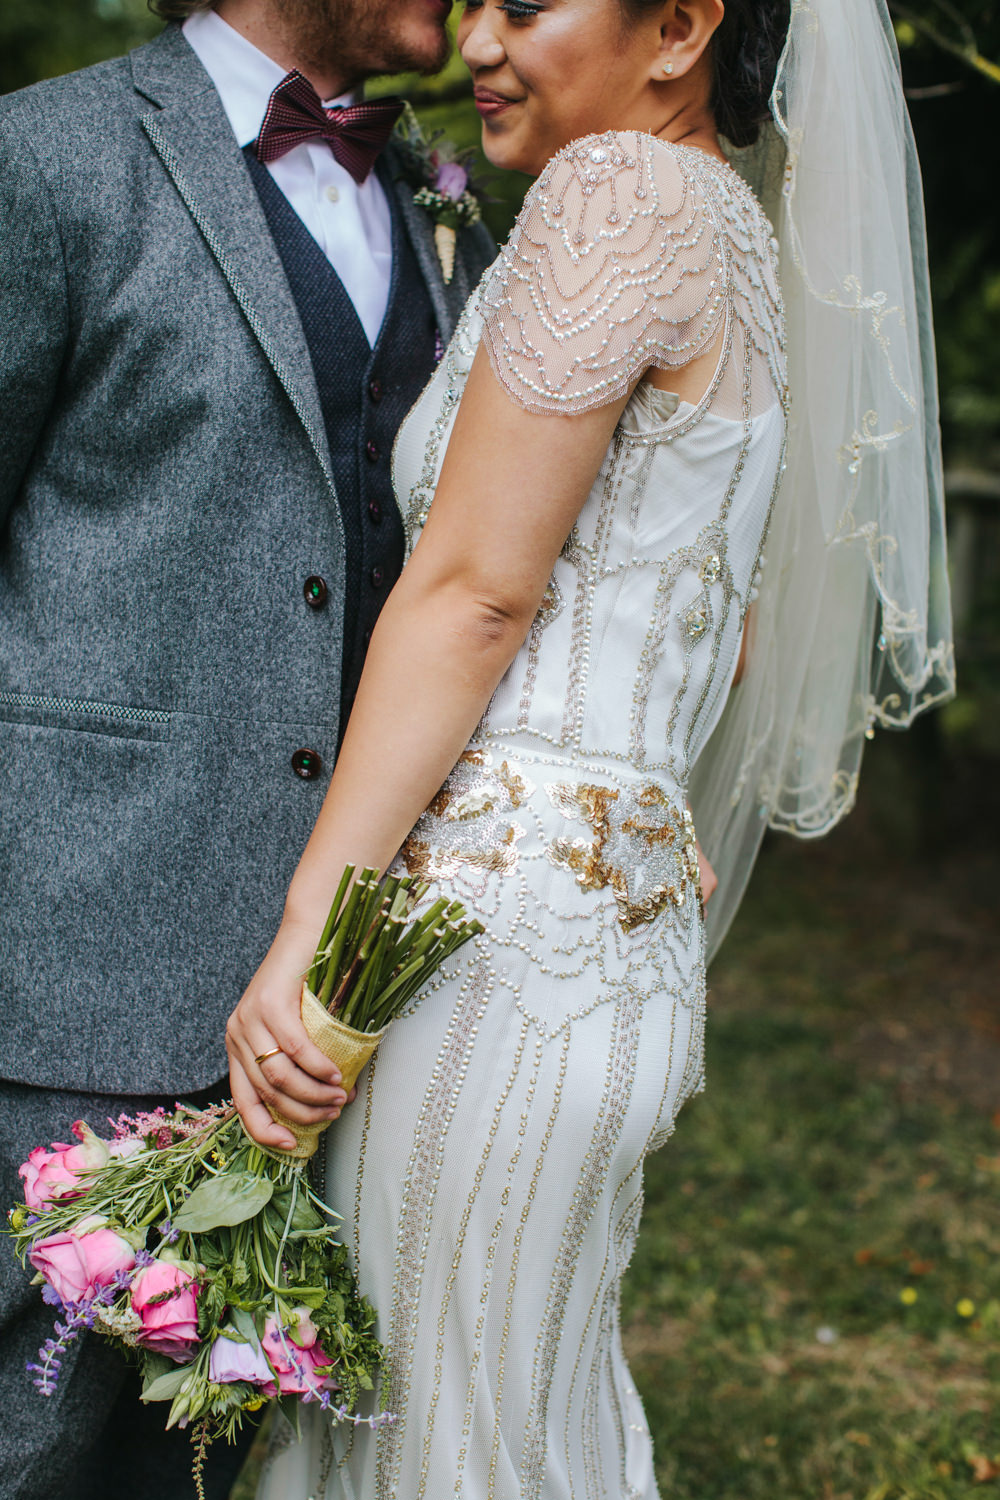 Jenny packham eden gown for a vintage country wedding in a barn image by craig williams photography jenny packham eden gown for a vintage country ombrellifo Image collections